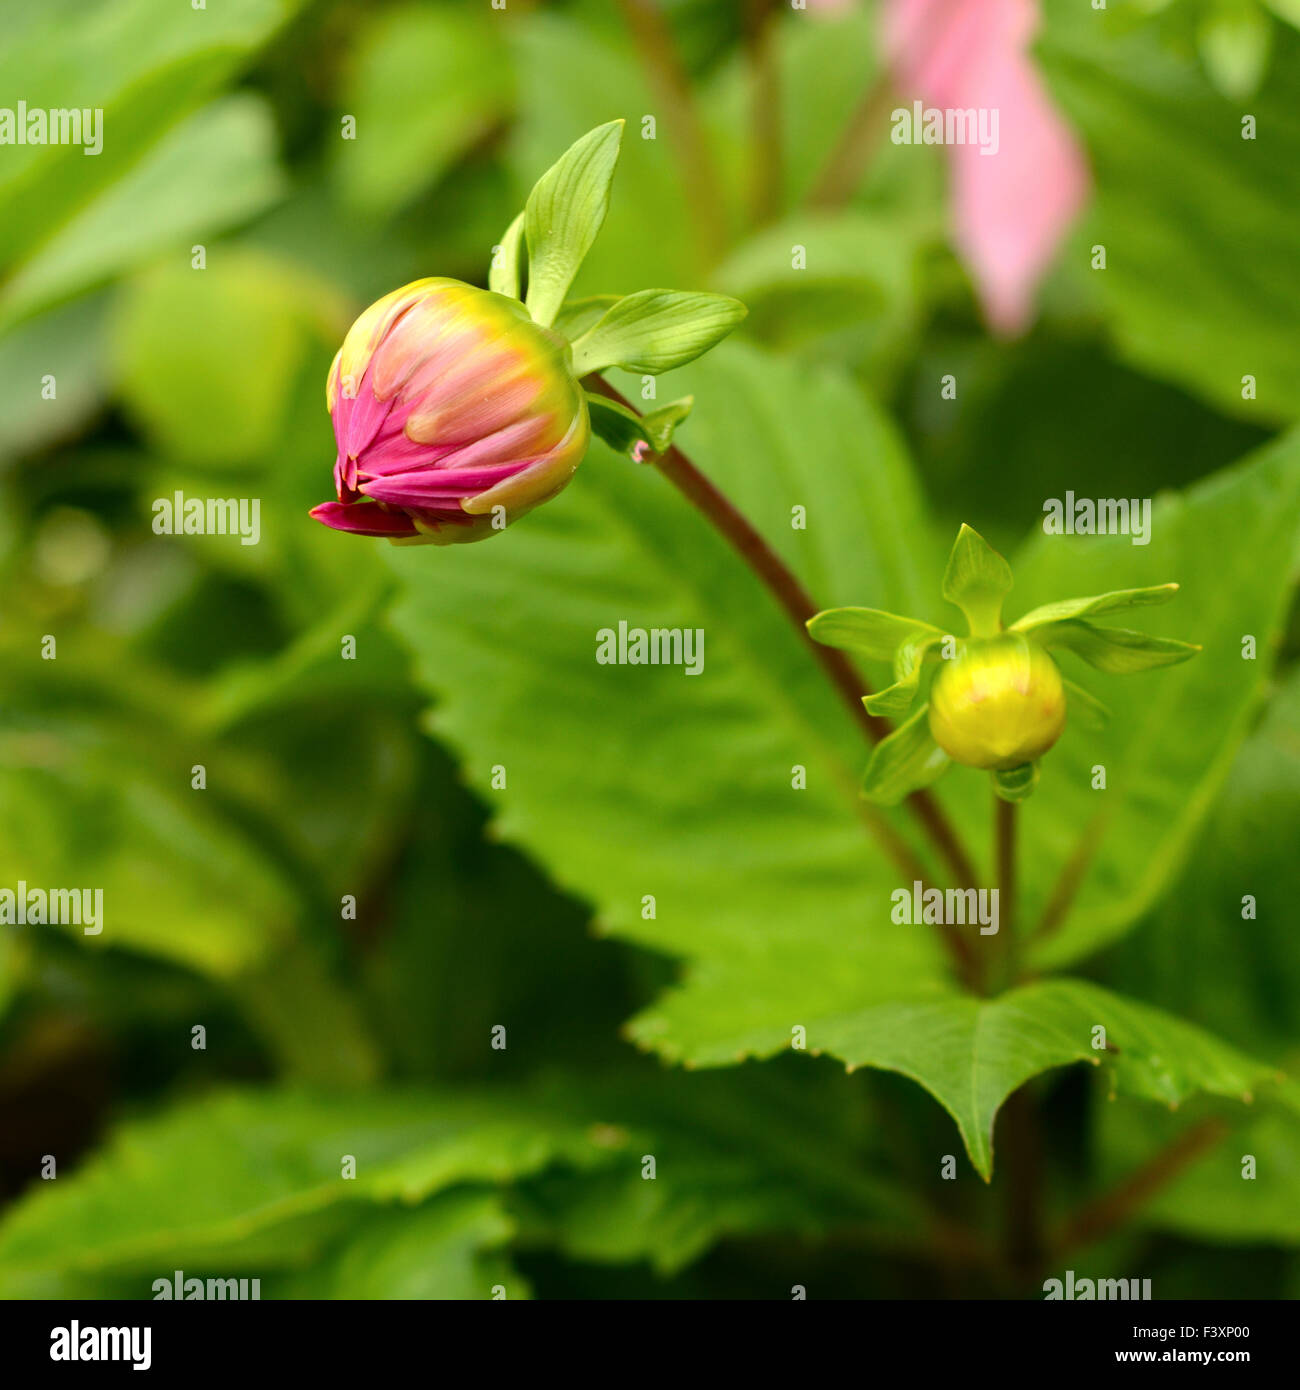 An Unopened Dahlia Flower In The Spring - Stock Image